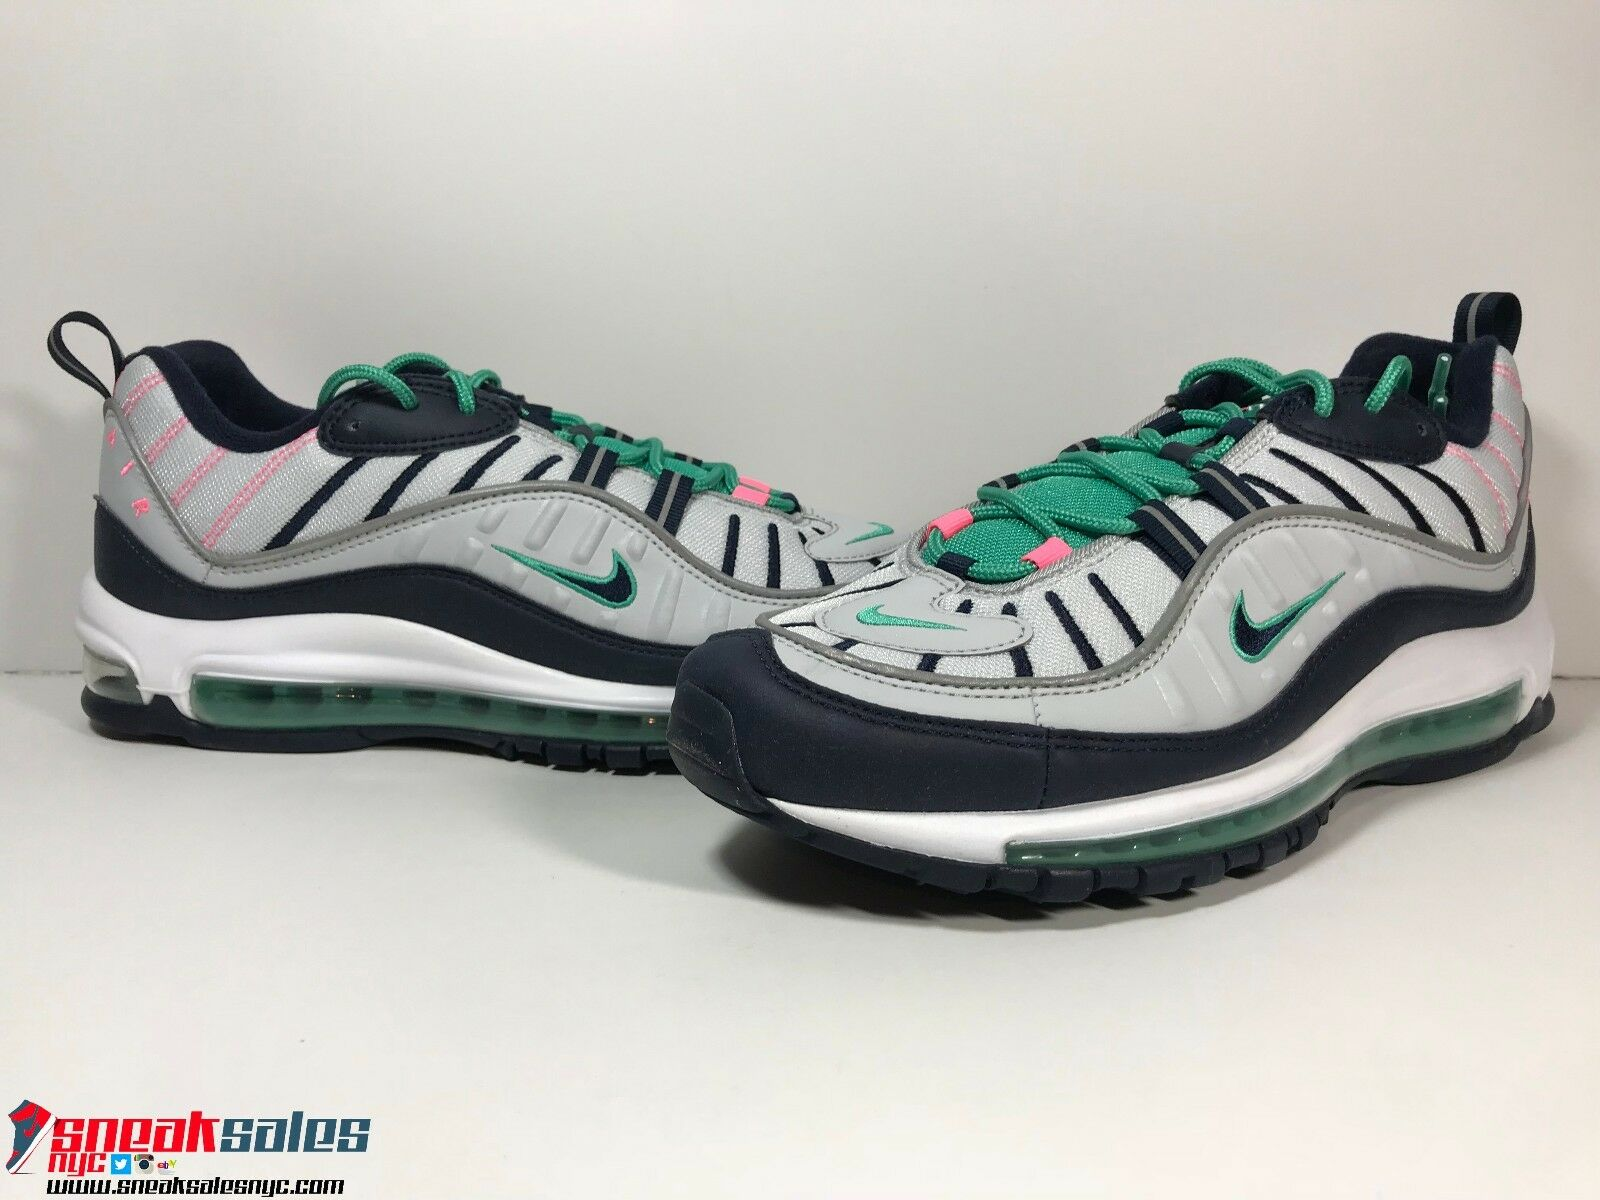 ab7f7adaef2a93 Nike Air Max 98 South Beach QS Pure Platinum Green 640744-005 Tidal 640744- 005 Green Size 10.5-14 713912